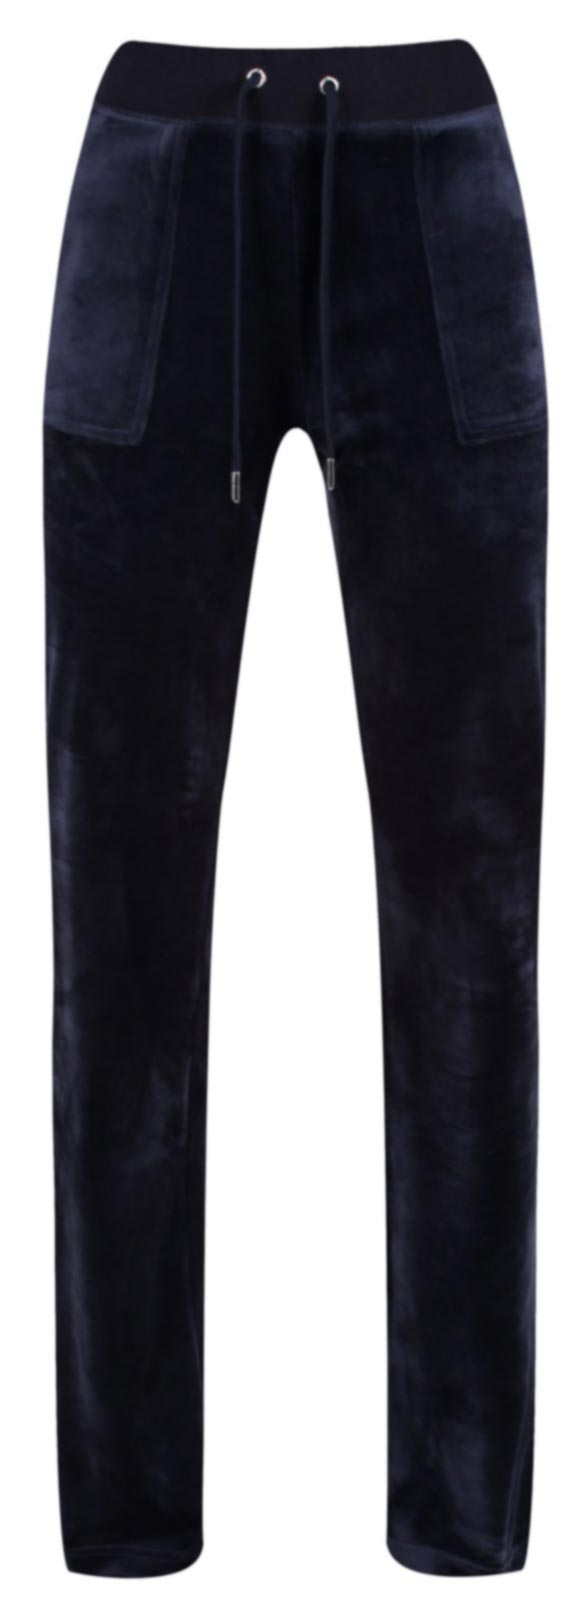 Juicy Couture Del Ray Velour Bottoms with Pockets Blue